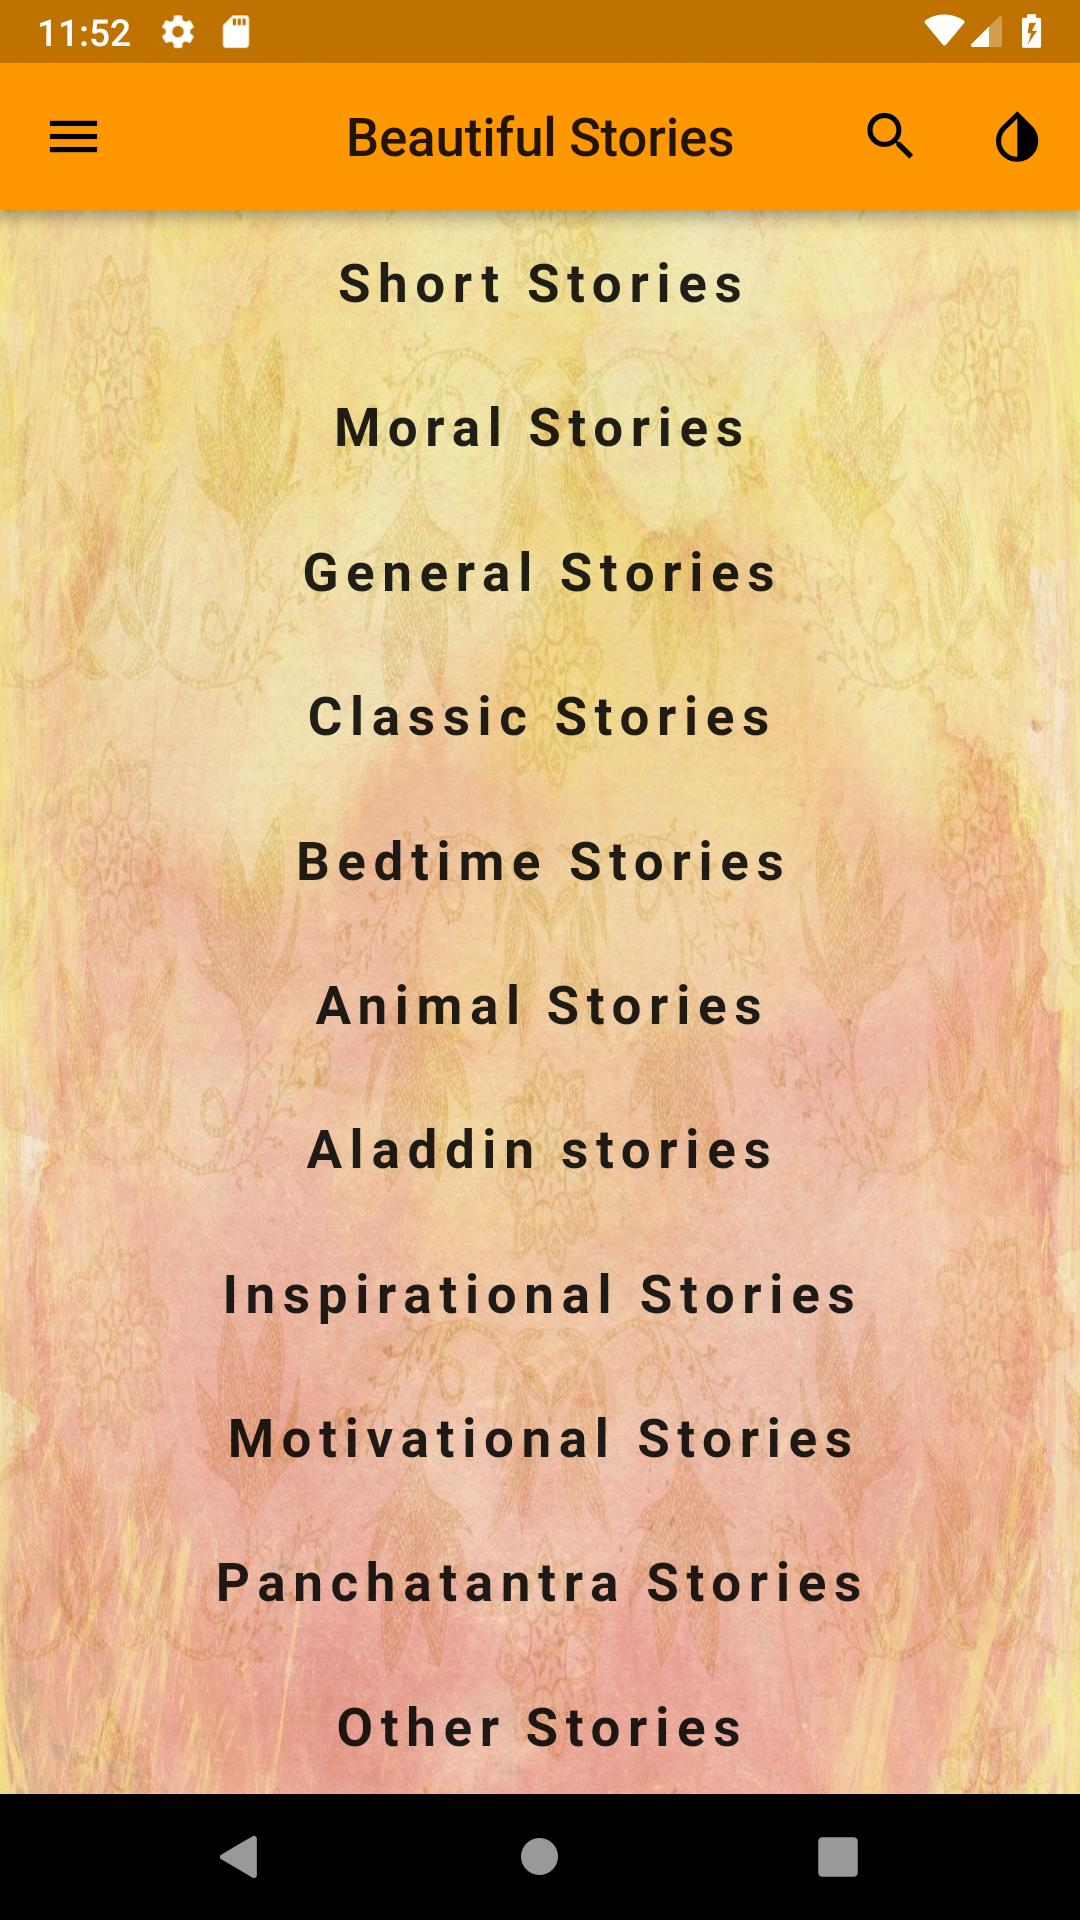 Beautiful English Stories for Android - APK Download